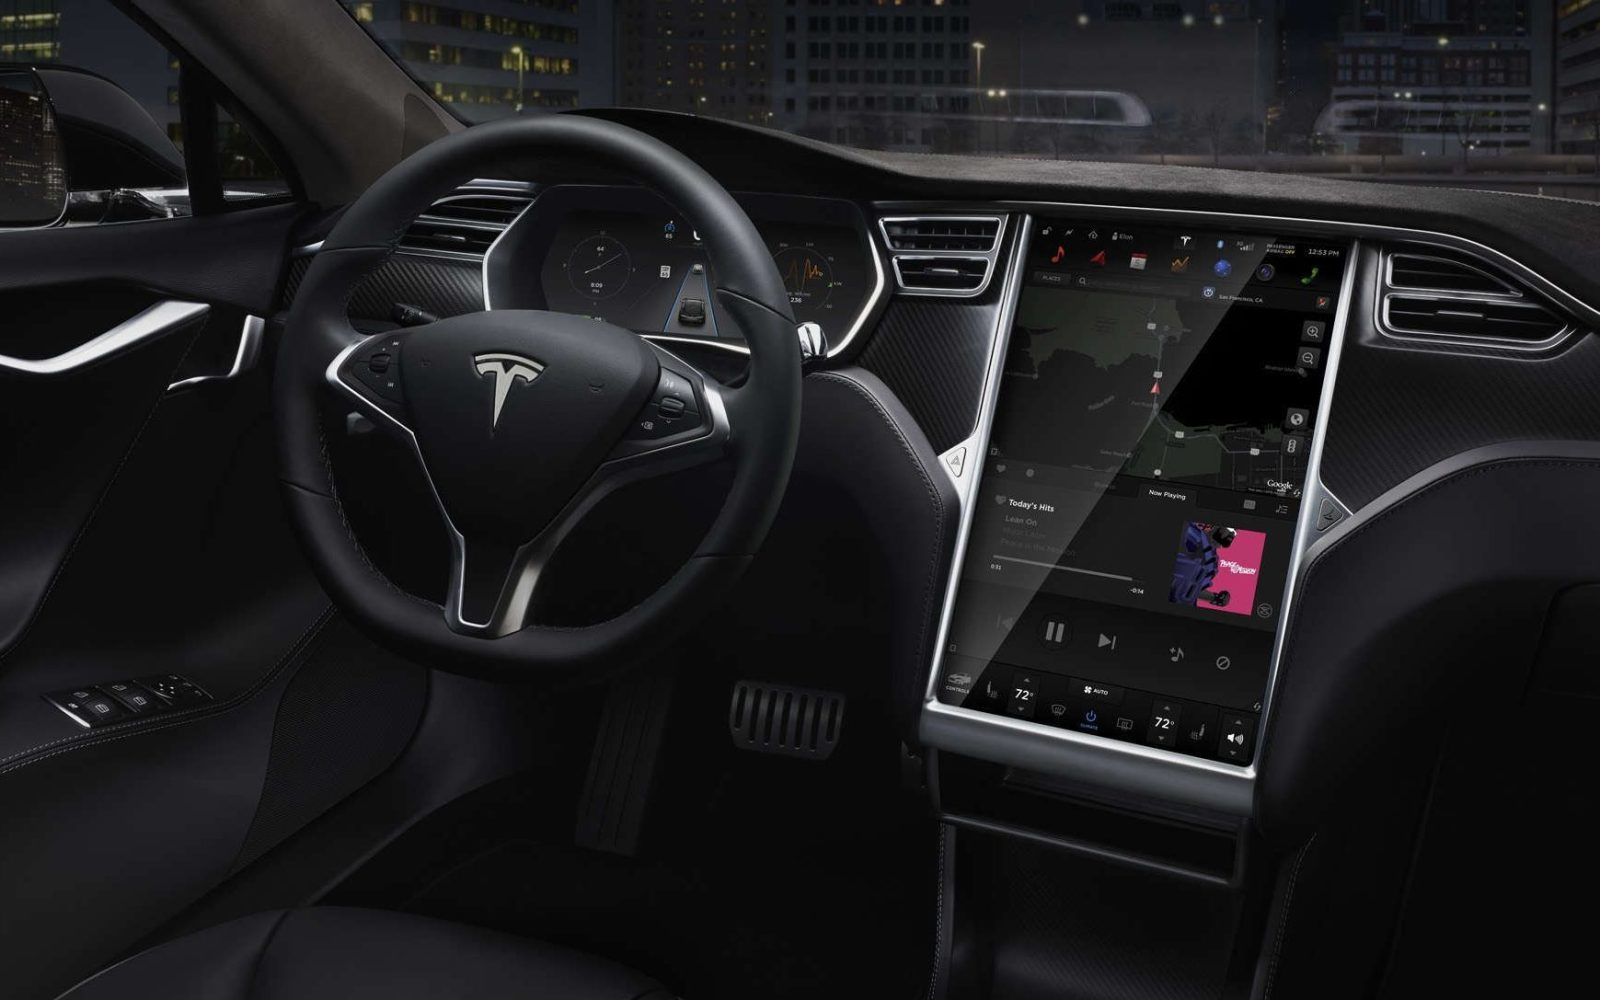 Tesla's full list of new features enabled with software updates is a